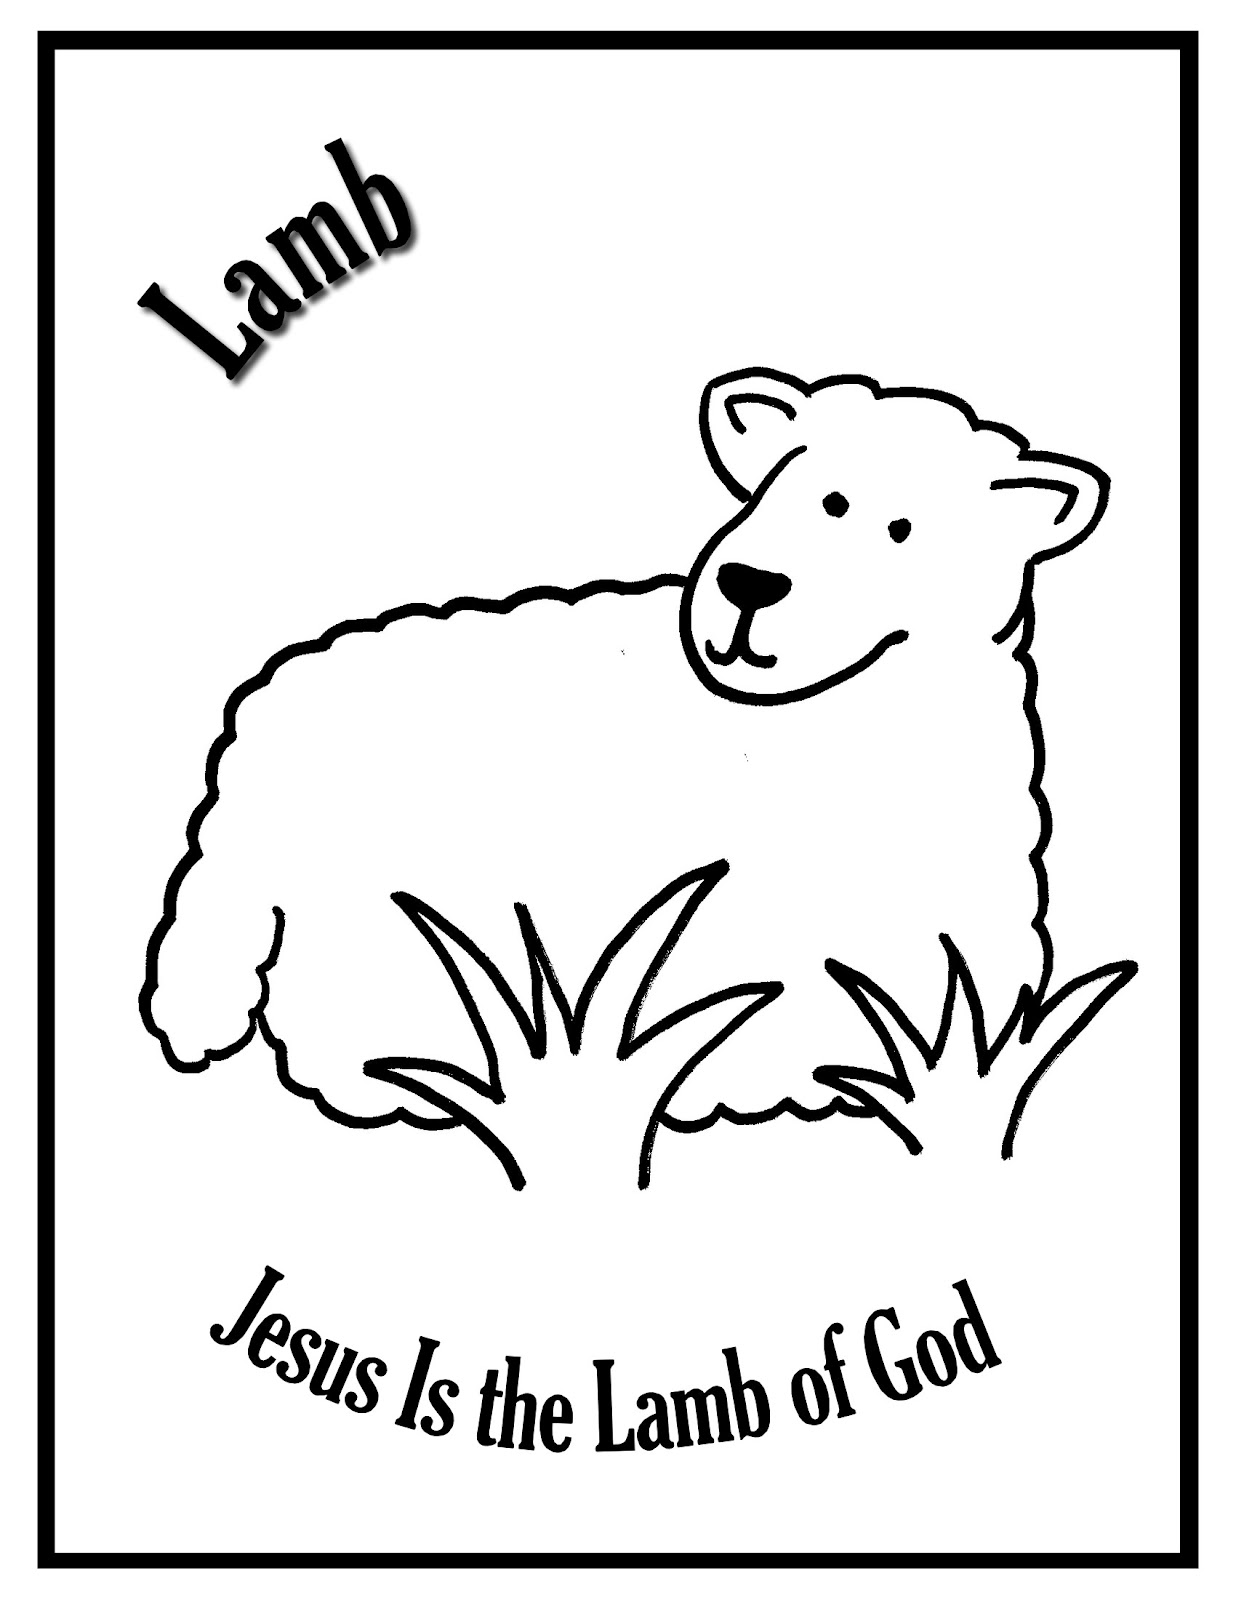 Focus on jesus lamb jesus is the lamb of god for Lamb coloring pages